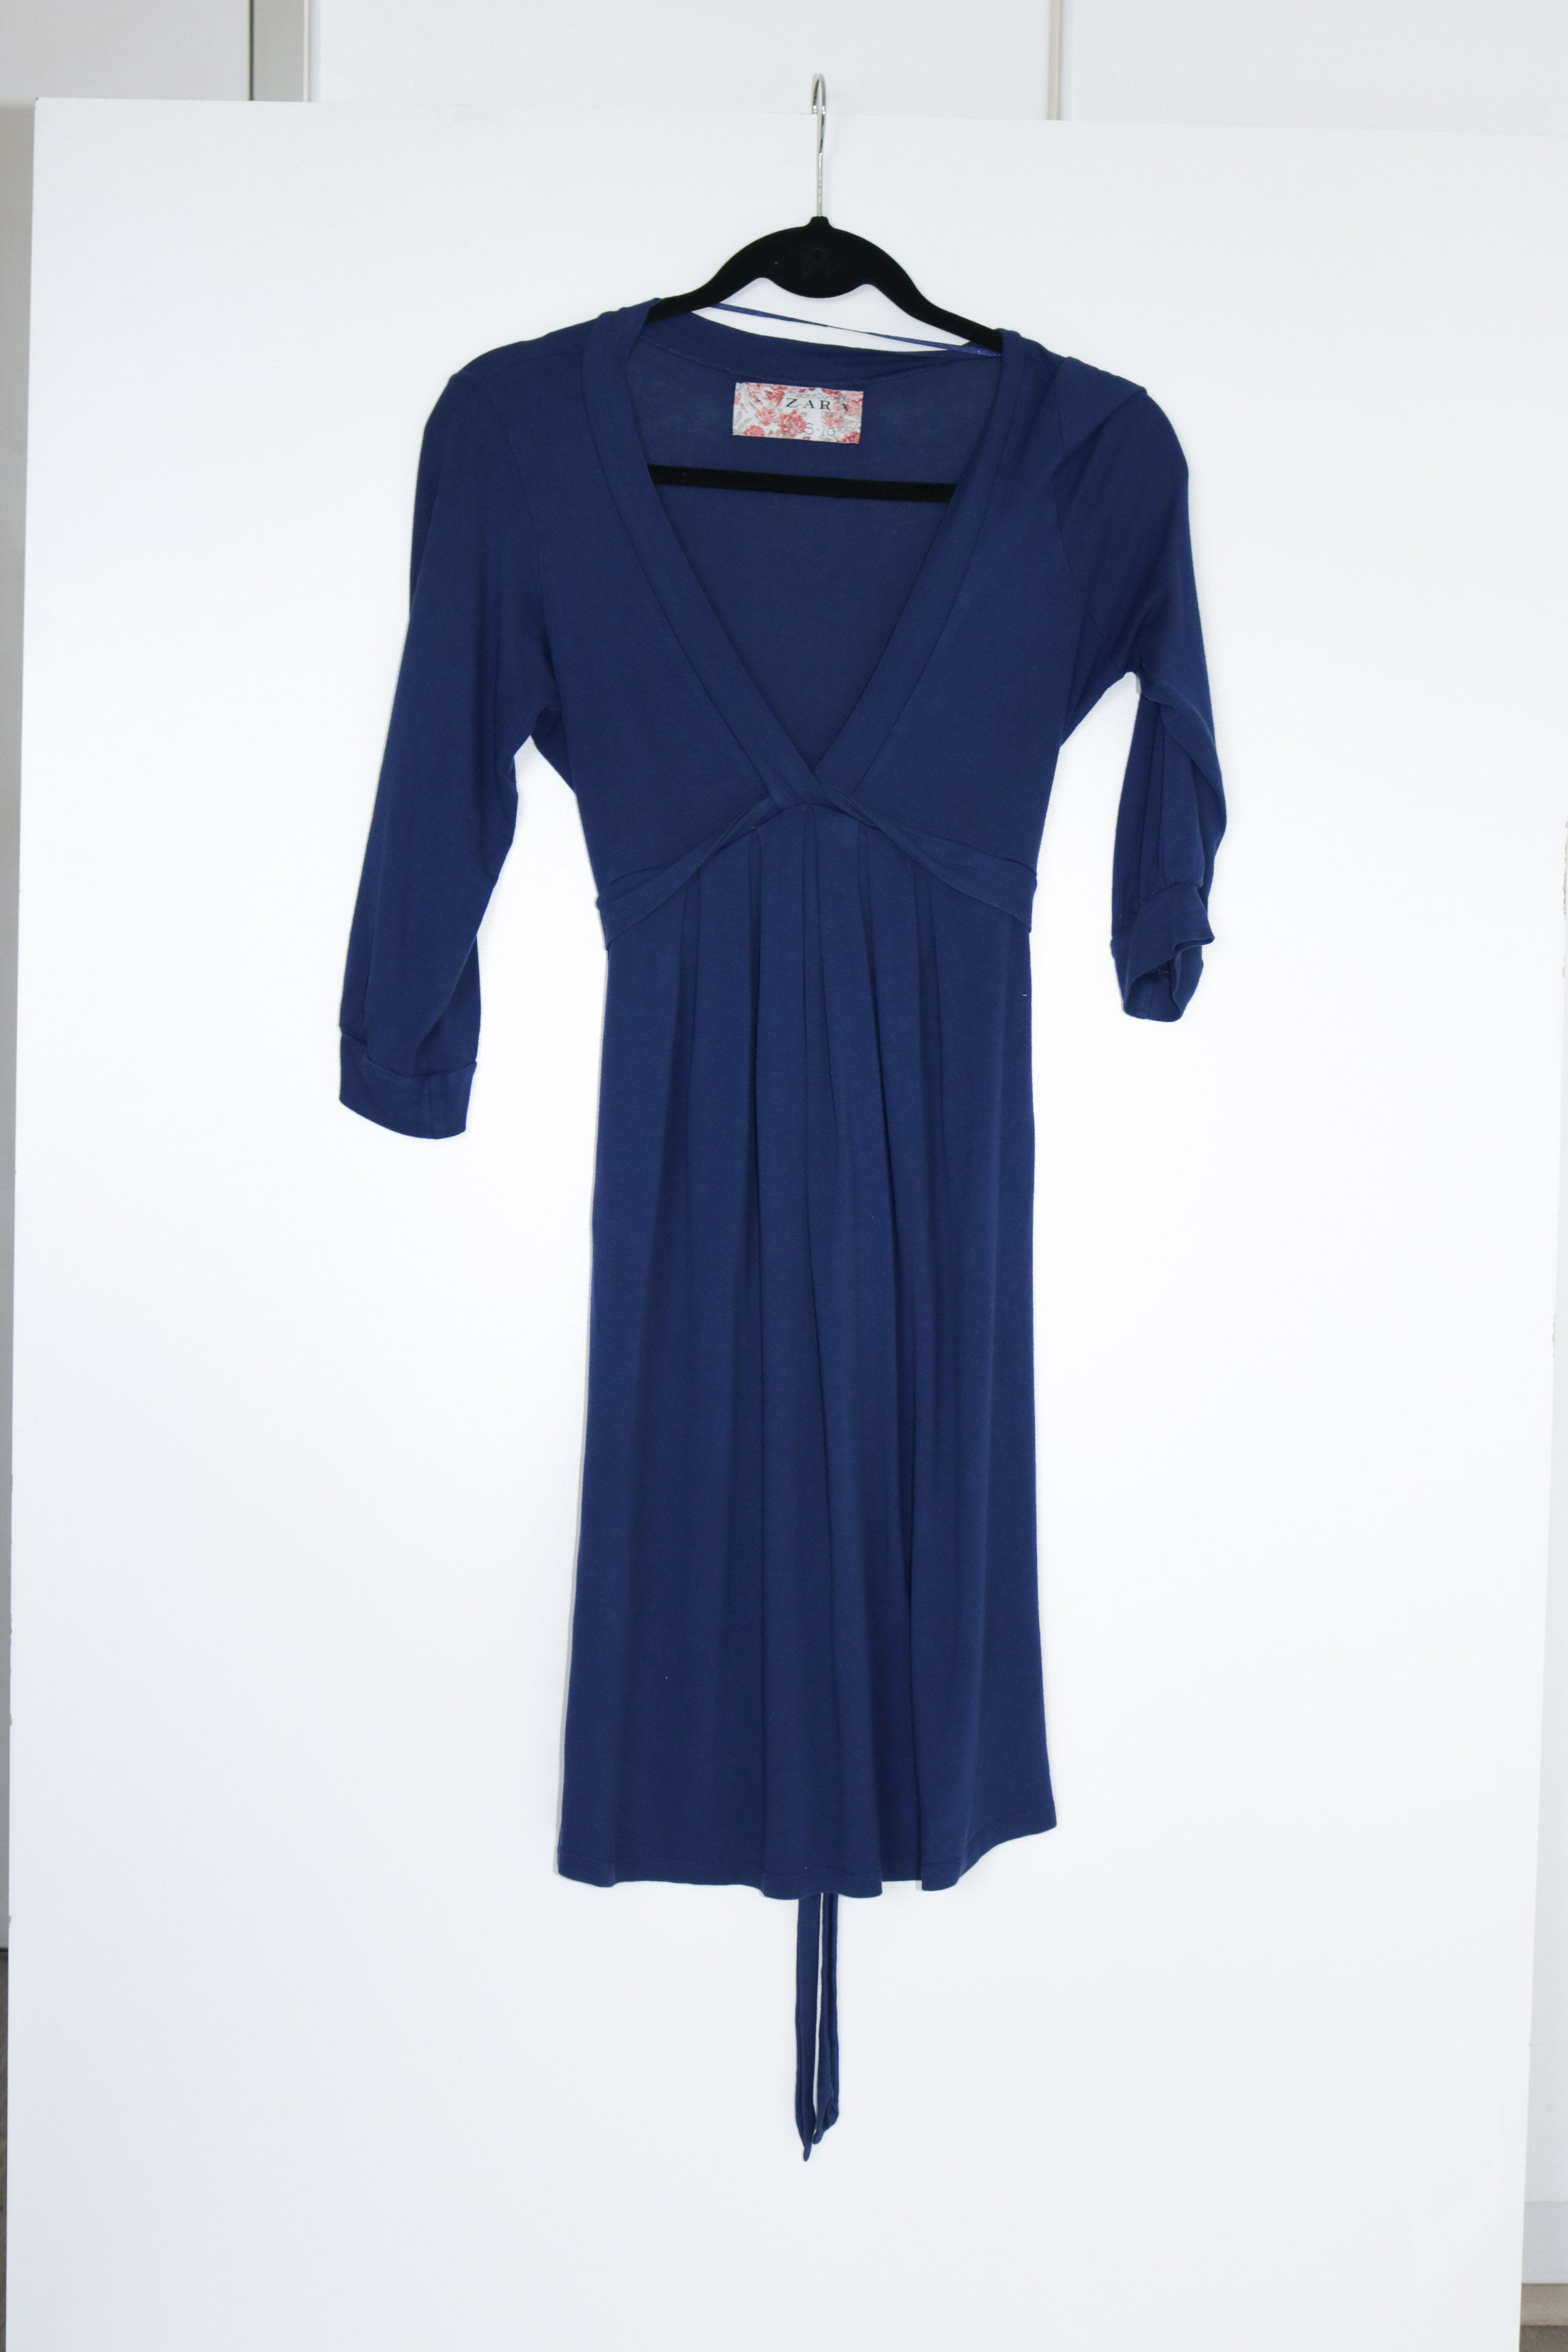 Zara dress SIZE 8/10